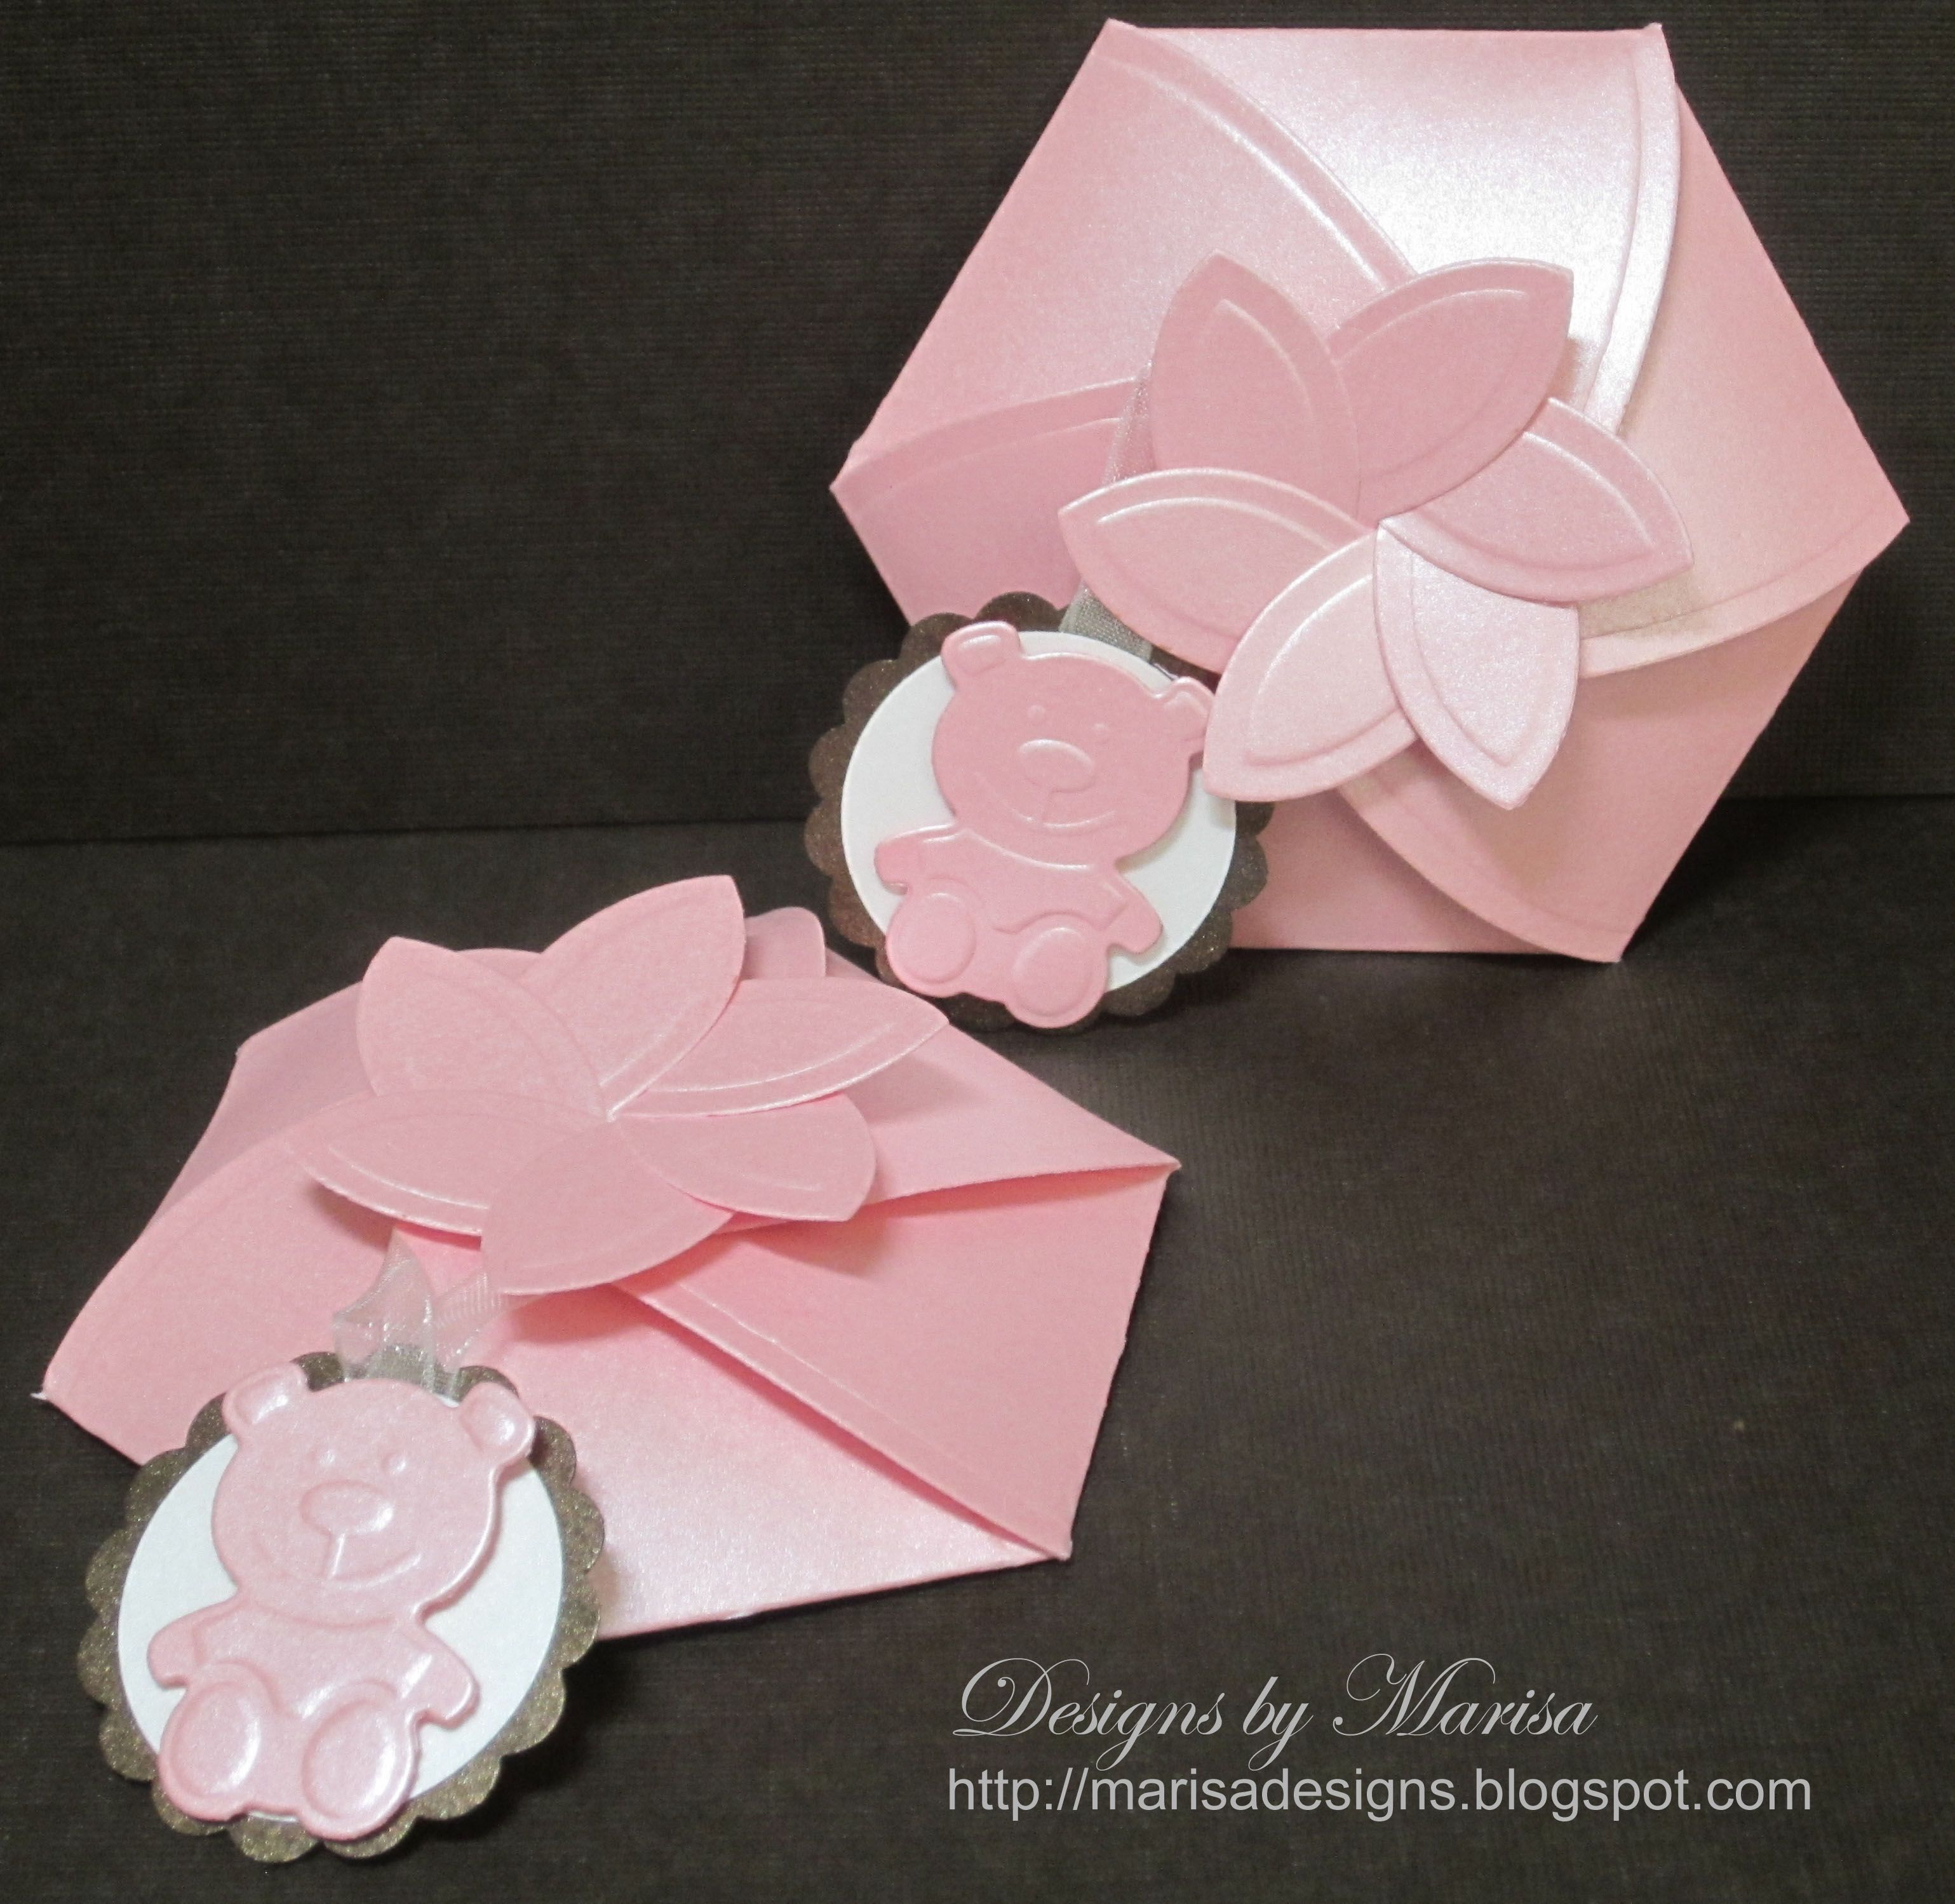 Baby shower favor boxes pinterest : Quot baby shower party favor boxes using spellbinders die